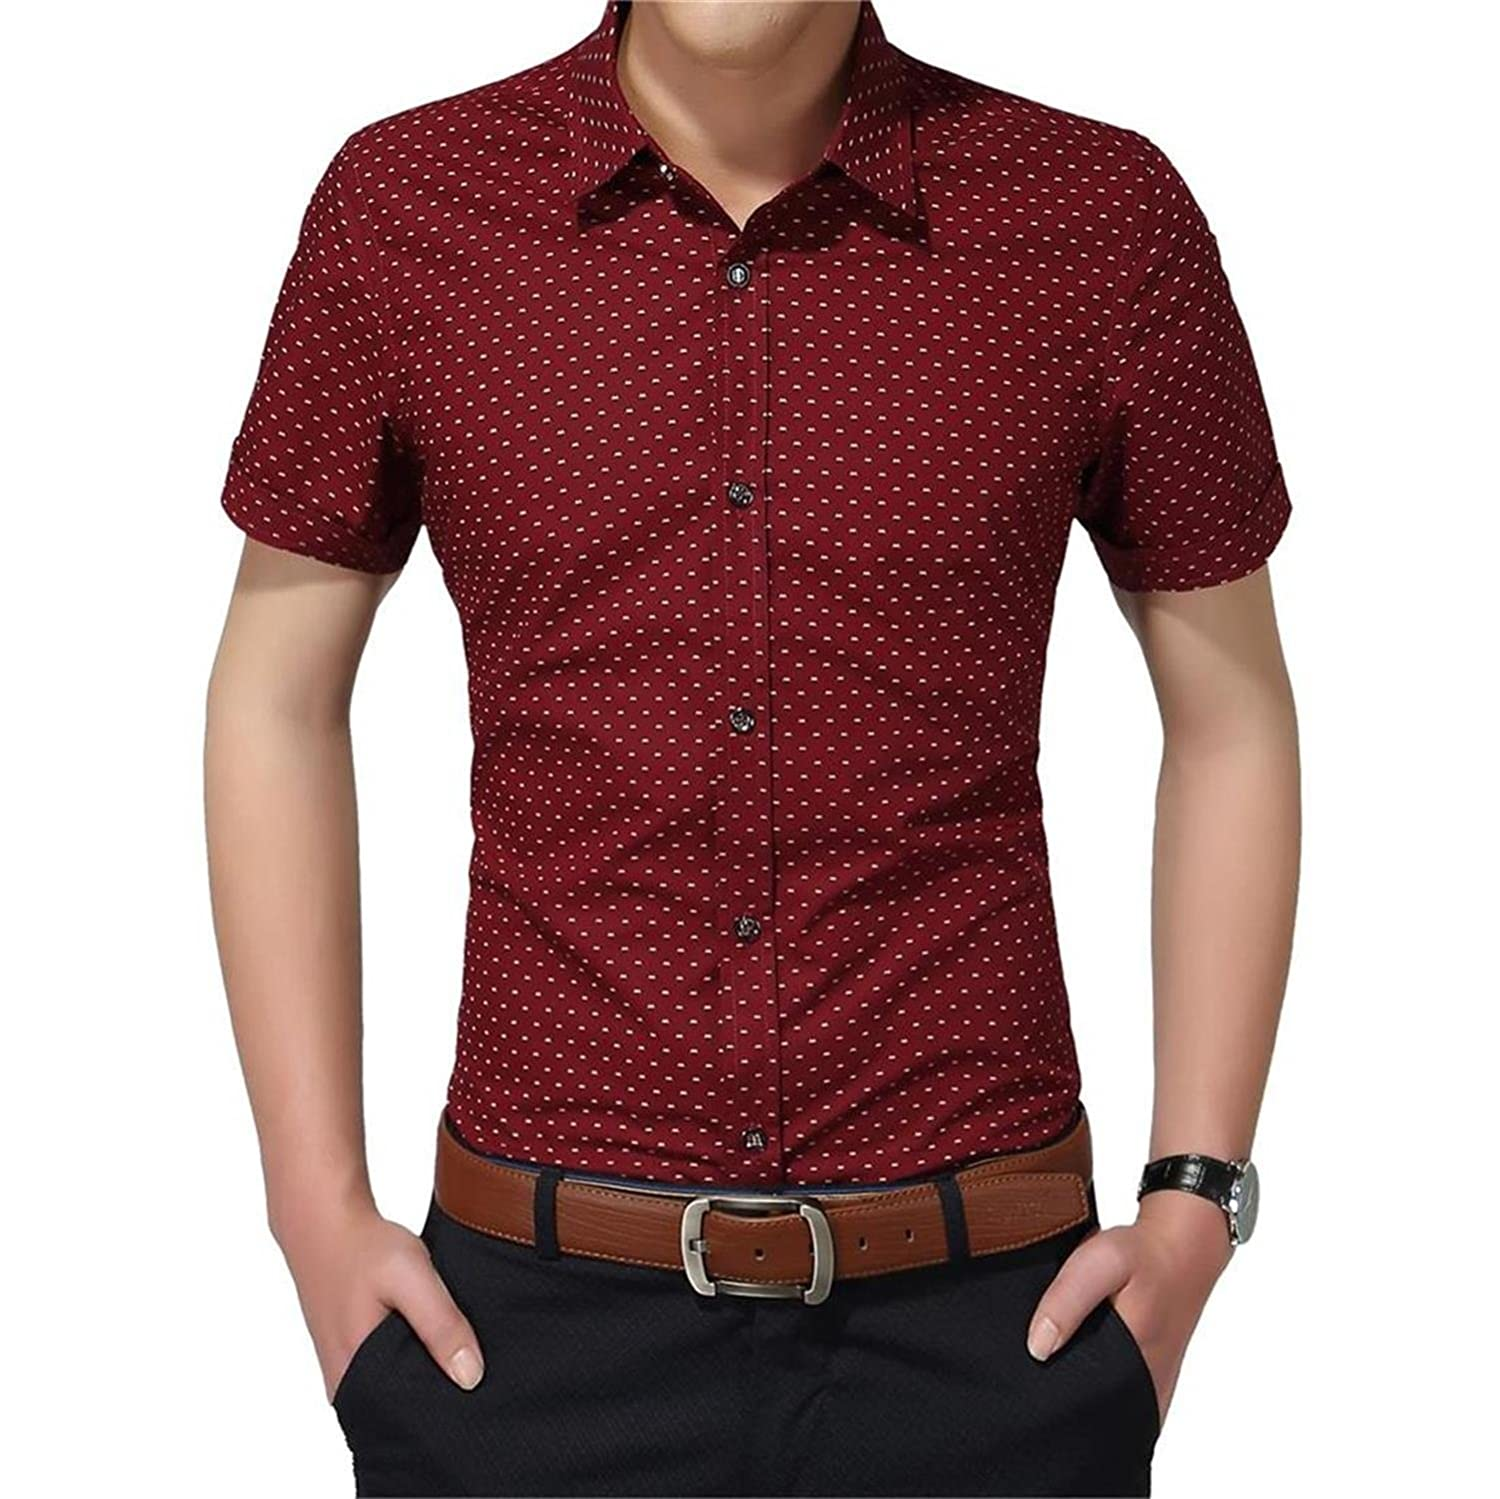 YTD Mens 100/% Cotton Casual Slim Fit Long Sleeve Button Down Printed Dress Shirts